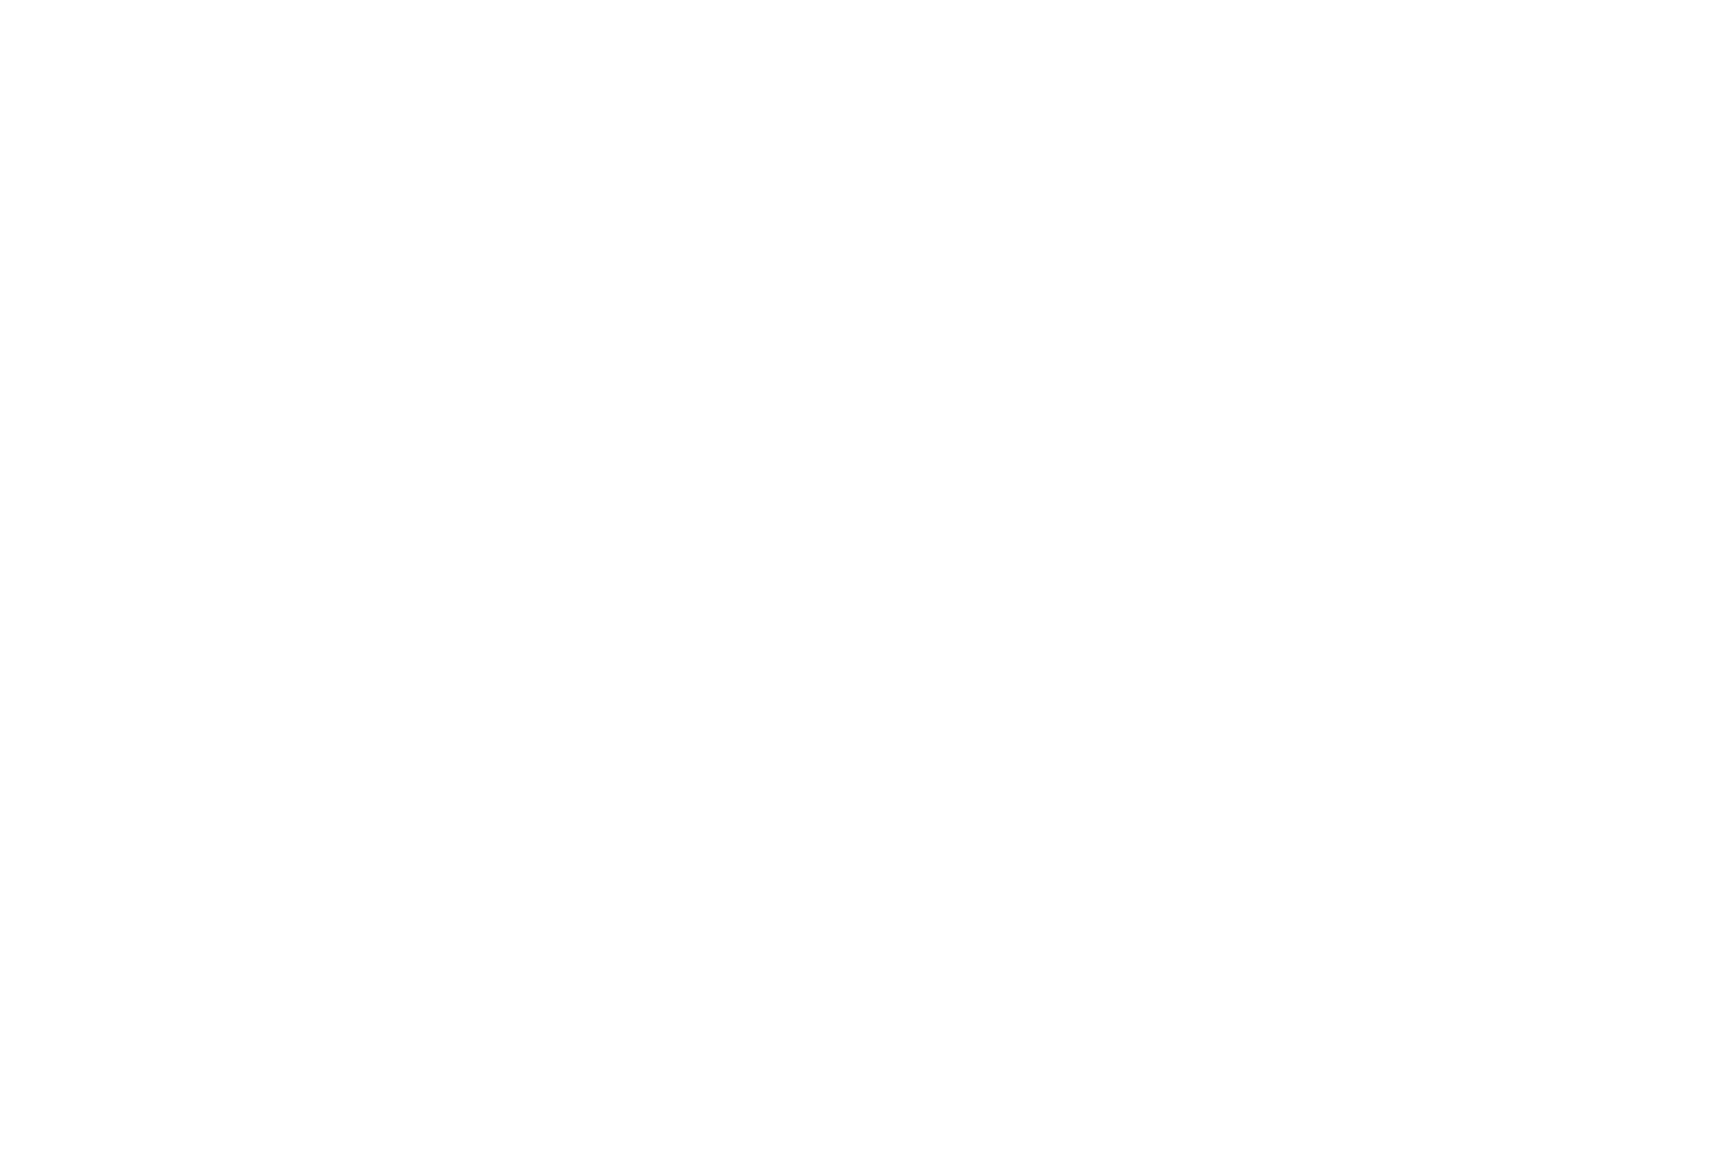 BEST INTERNATIONAL SHORT FILM NOMINATION - Move Me Productions Belgium - Film Festival - 2018.png